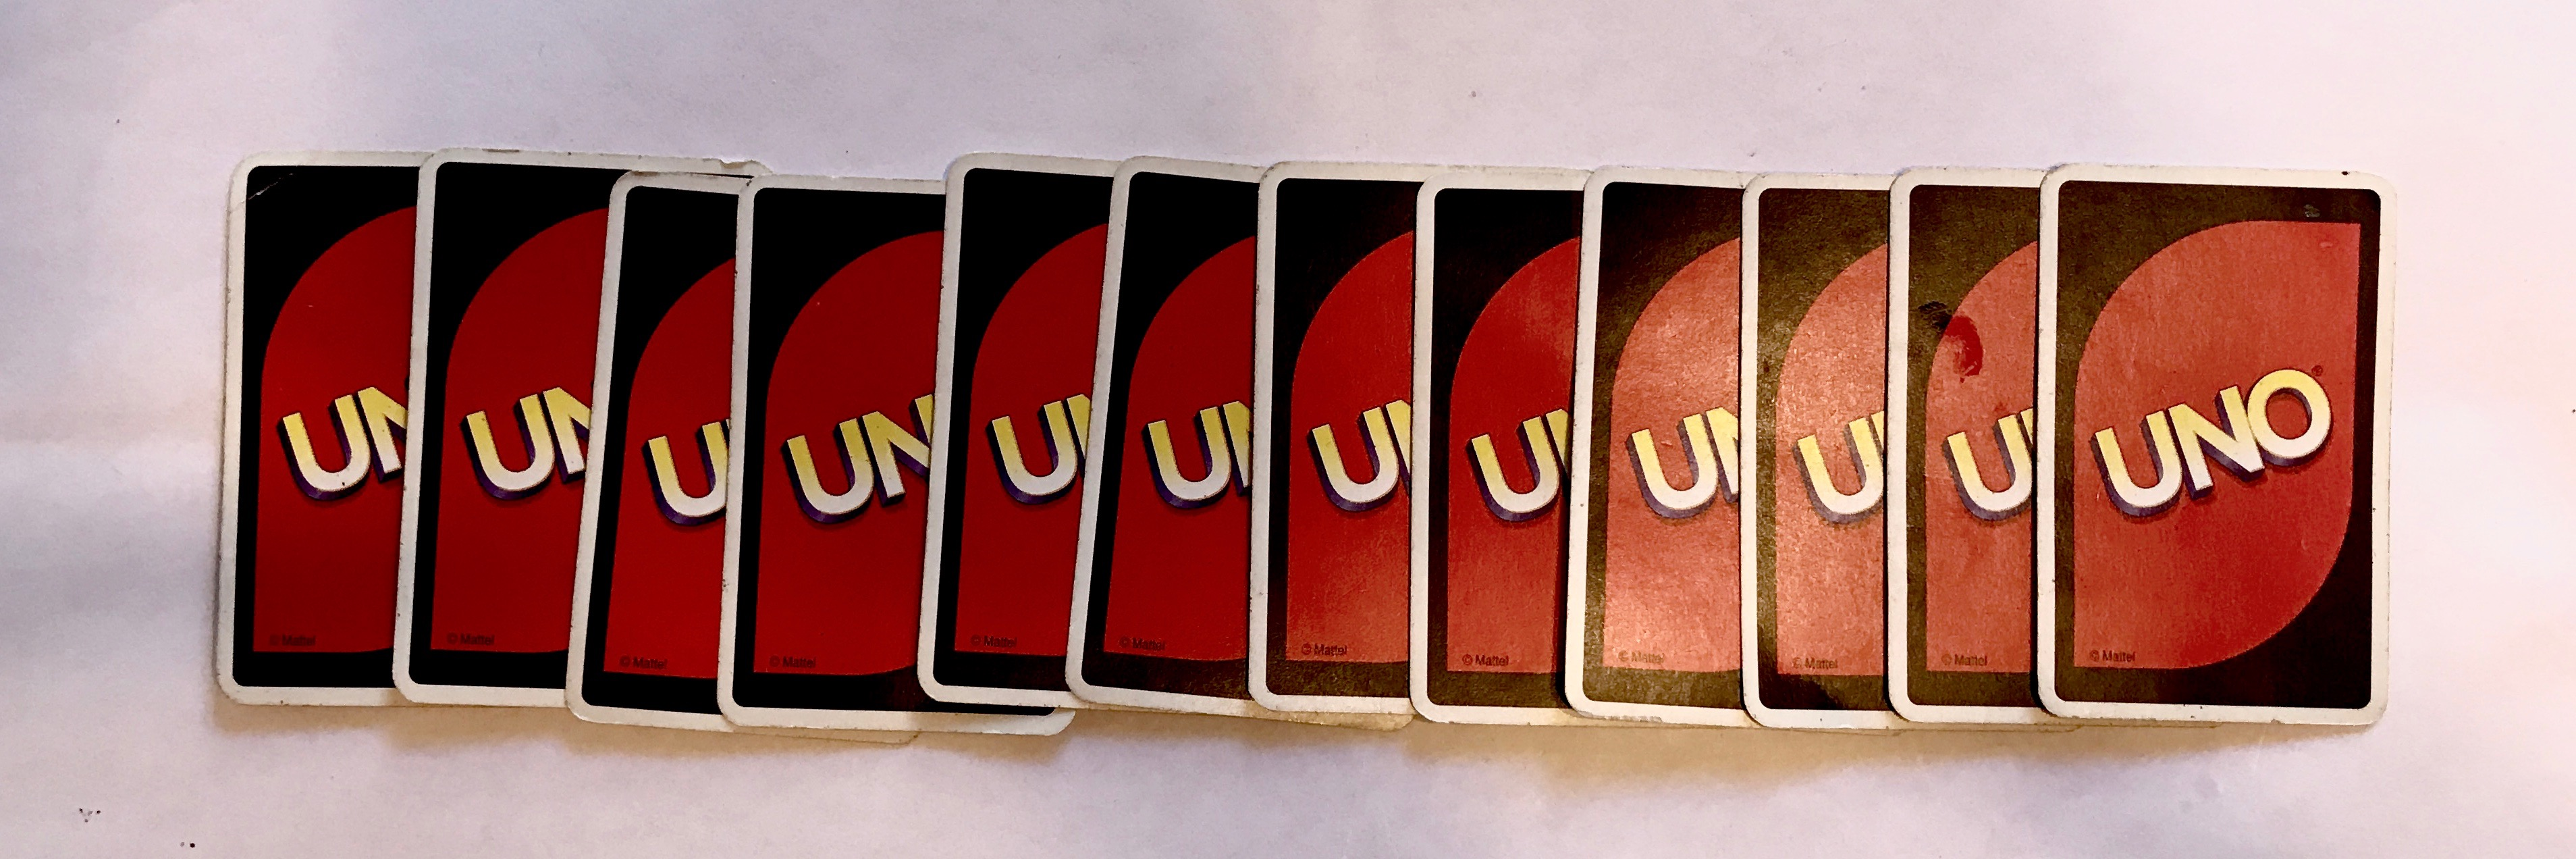 3 Ways to Play Uno with a Toddler